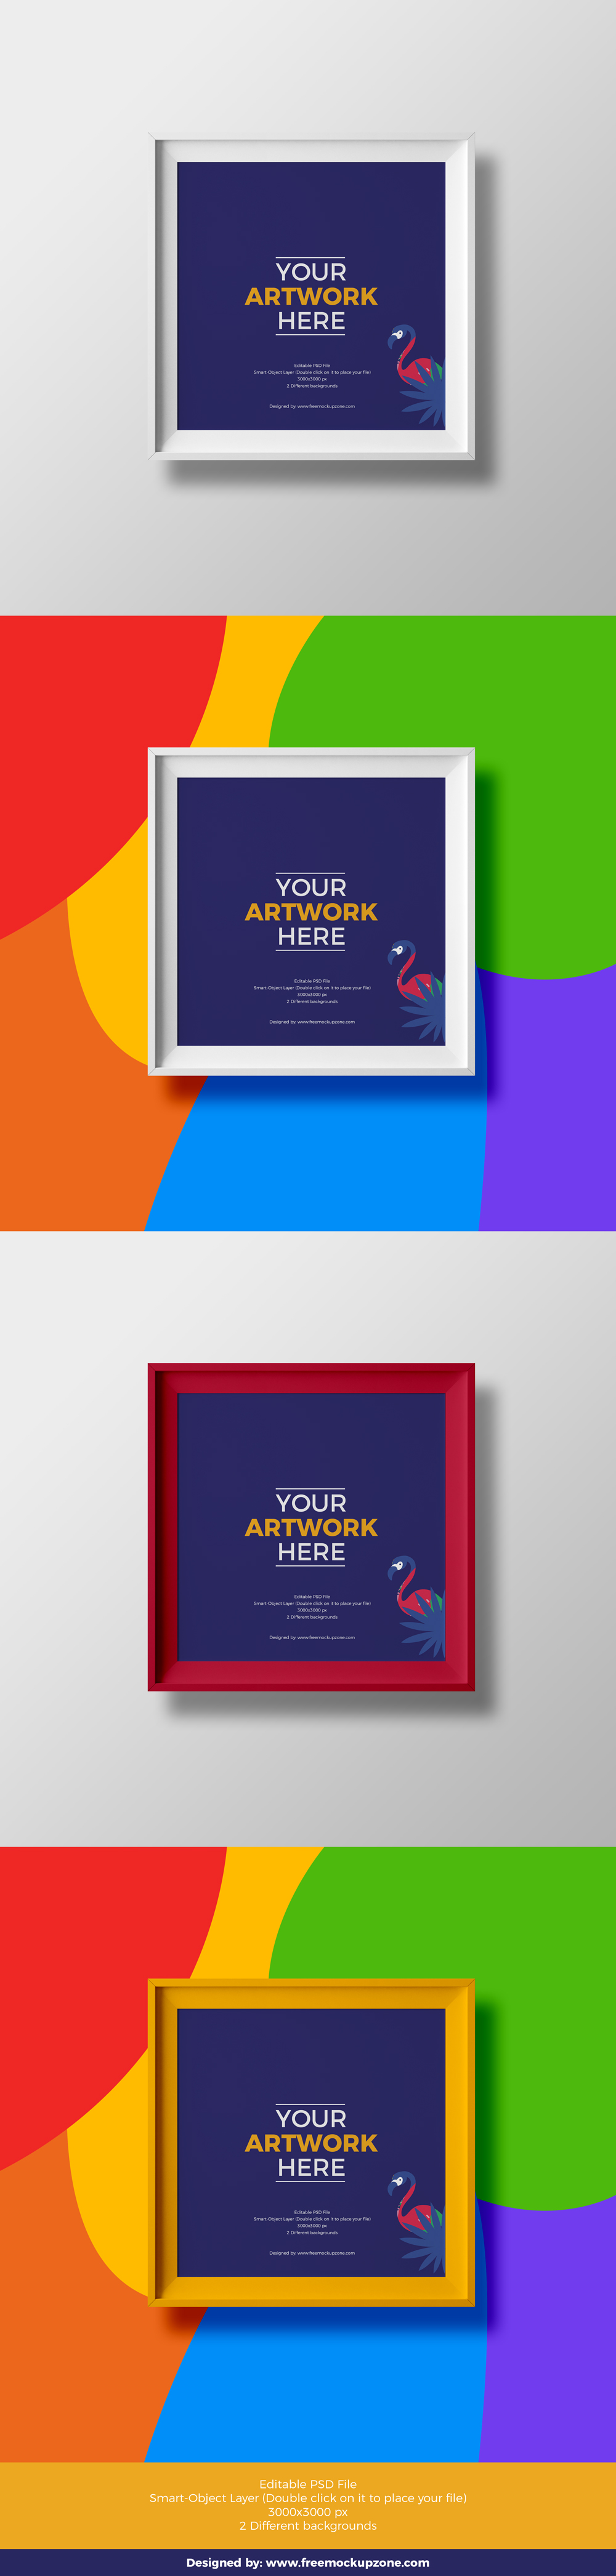 Free-Frame-Mockup-For-Design-&-Branding